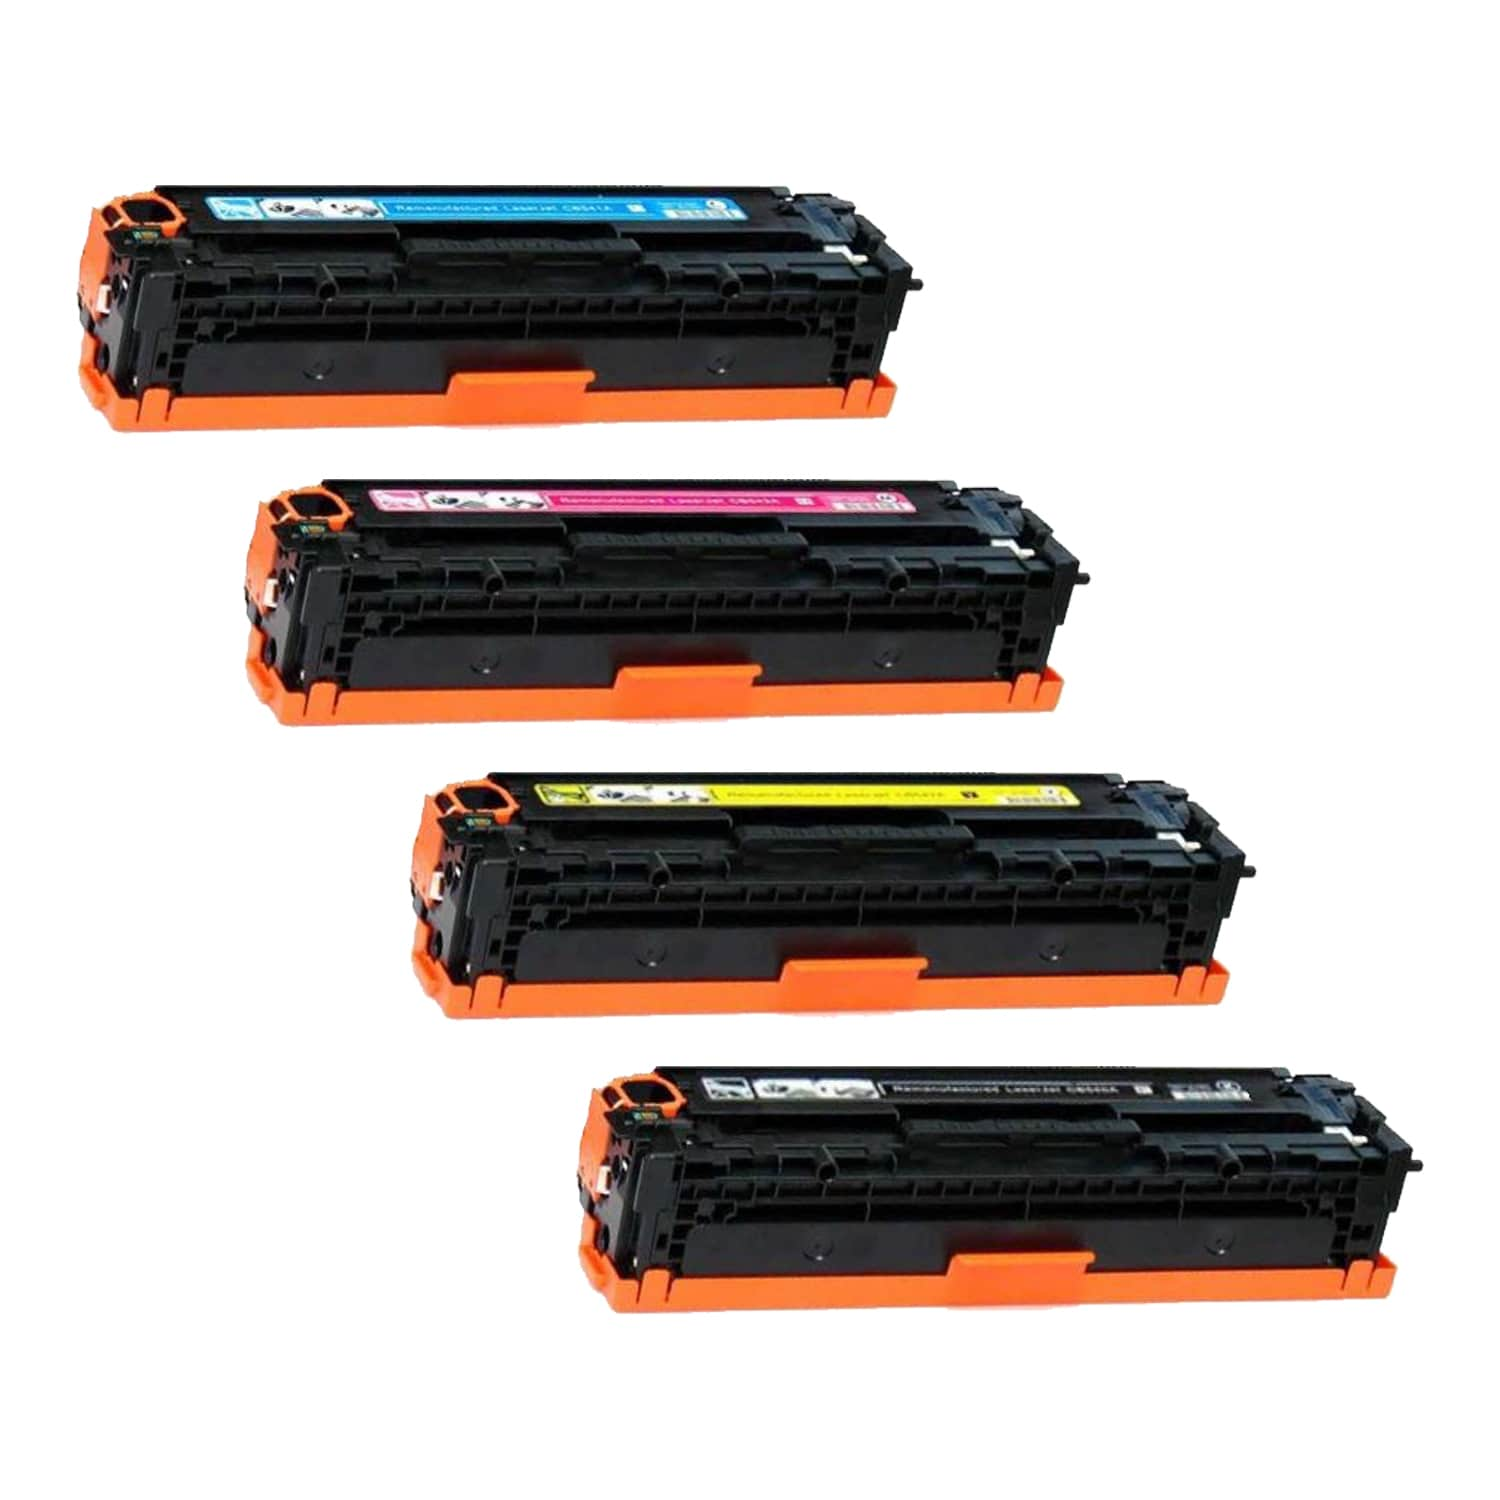 Remanufactured HP 201X Toner High Capacity Pack - 4 Cartridges